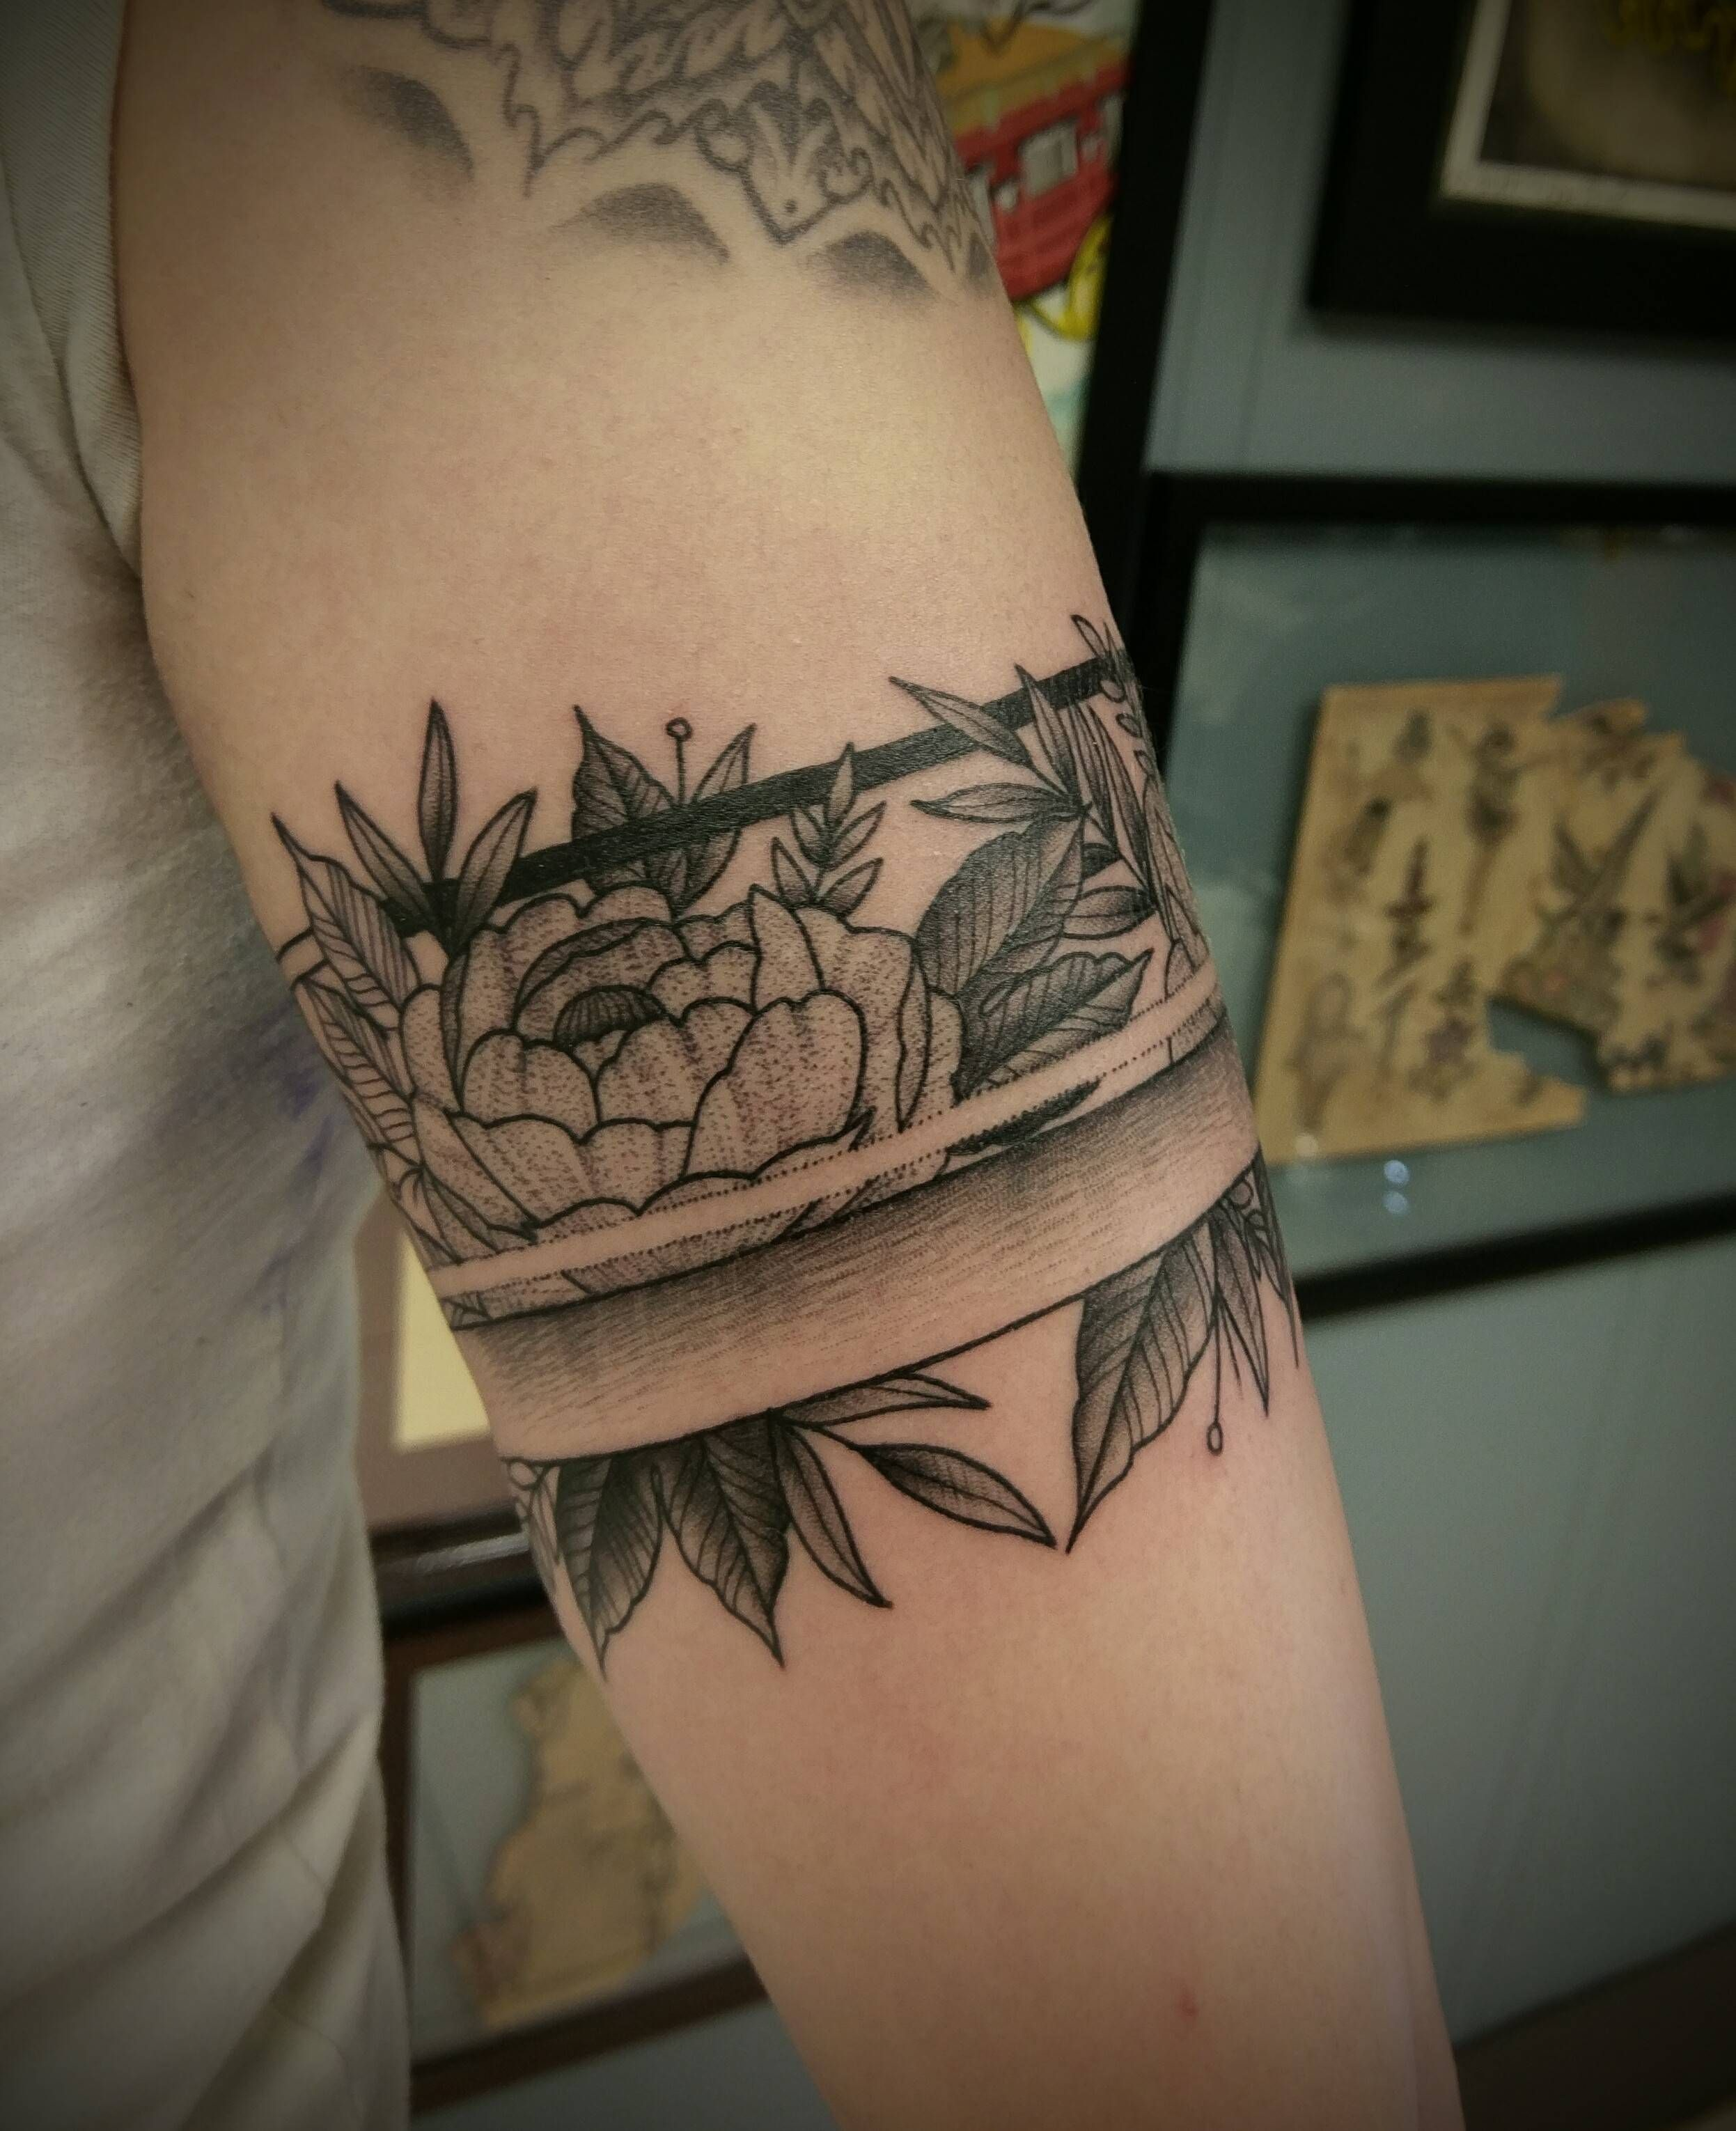 Flower Armband By Shane Olds At Rise Above In Orlando Fl Ankle Band Tattoo Tattoos Arm Band Tattoo